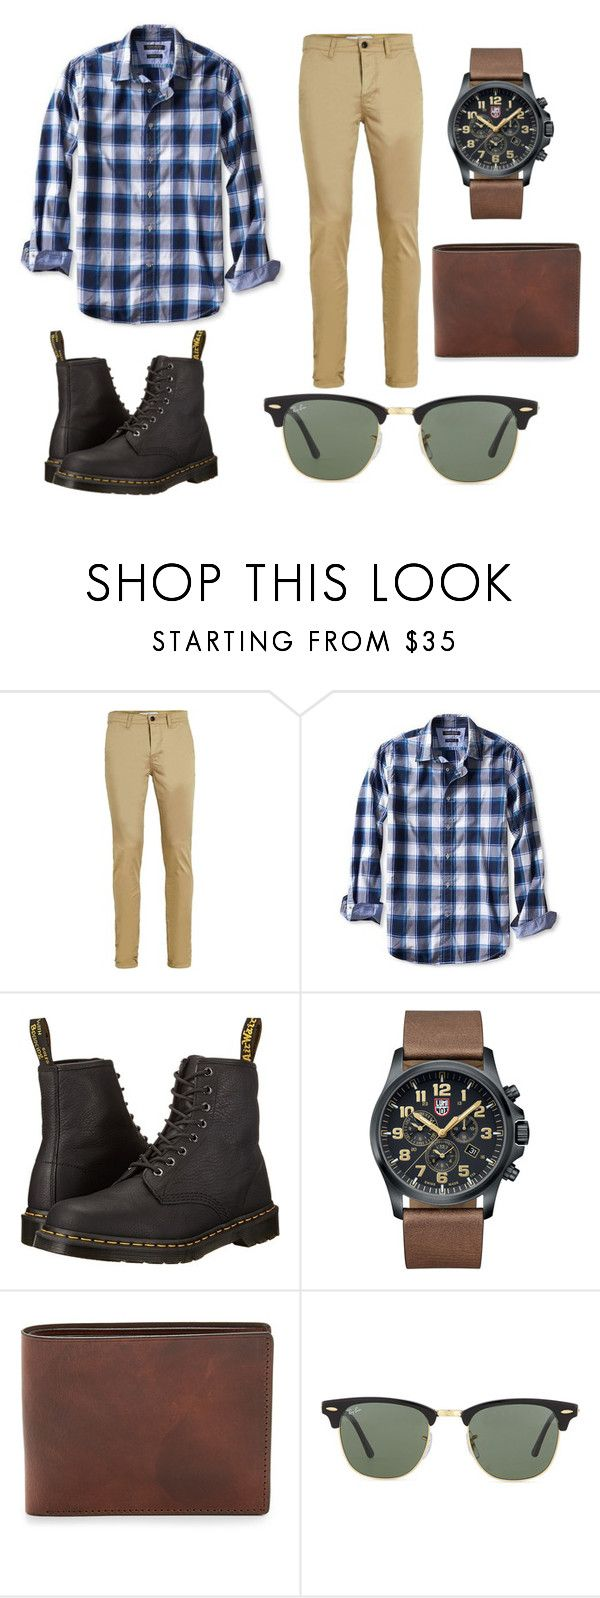 """Smart casual."" by lukecneal ❤ liked on Polyvore featuring Topman, Banana Republic, Dr. Martens, Luminox, Ray-Ban, men's fashion and menswear"